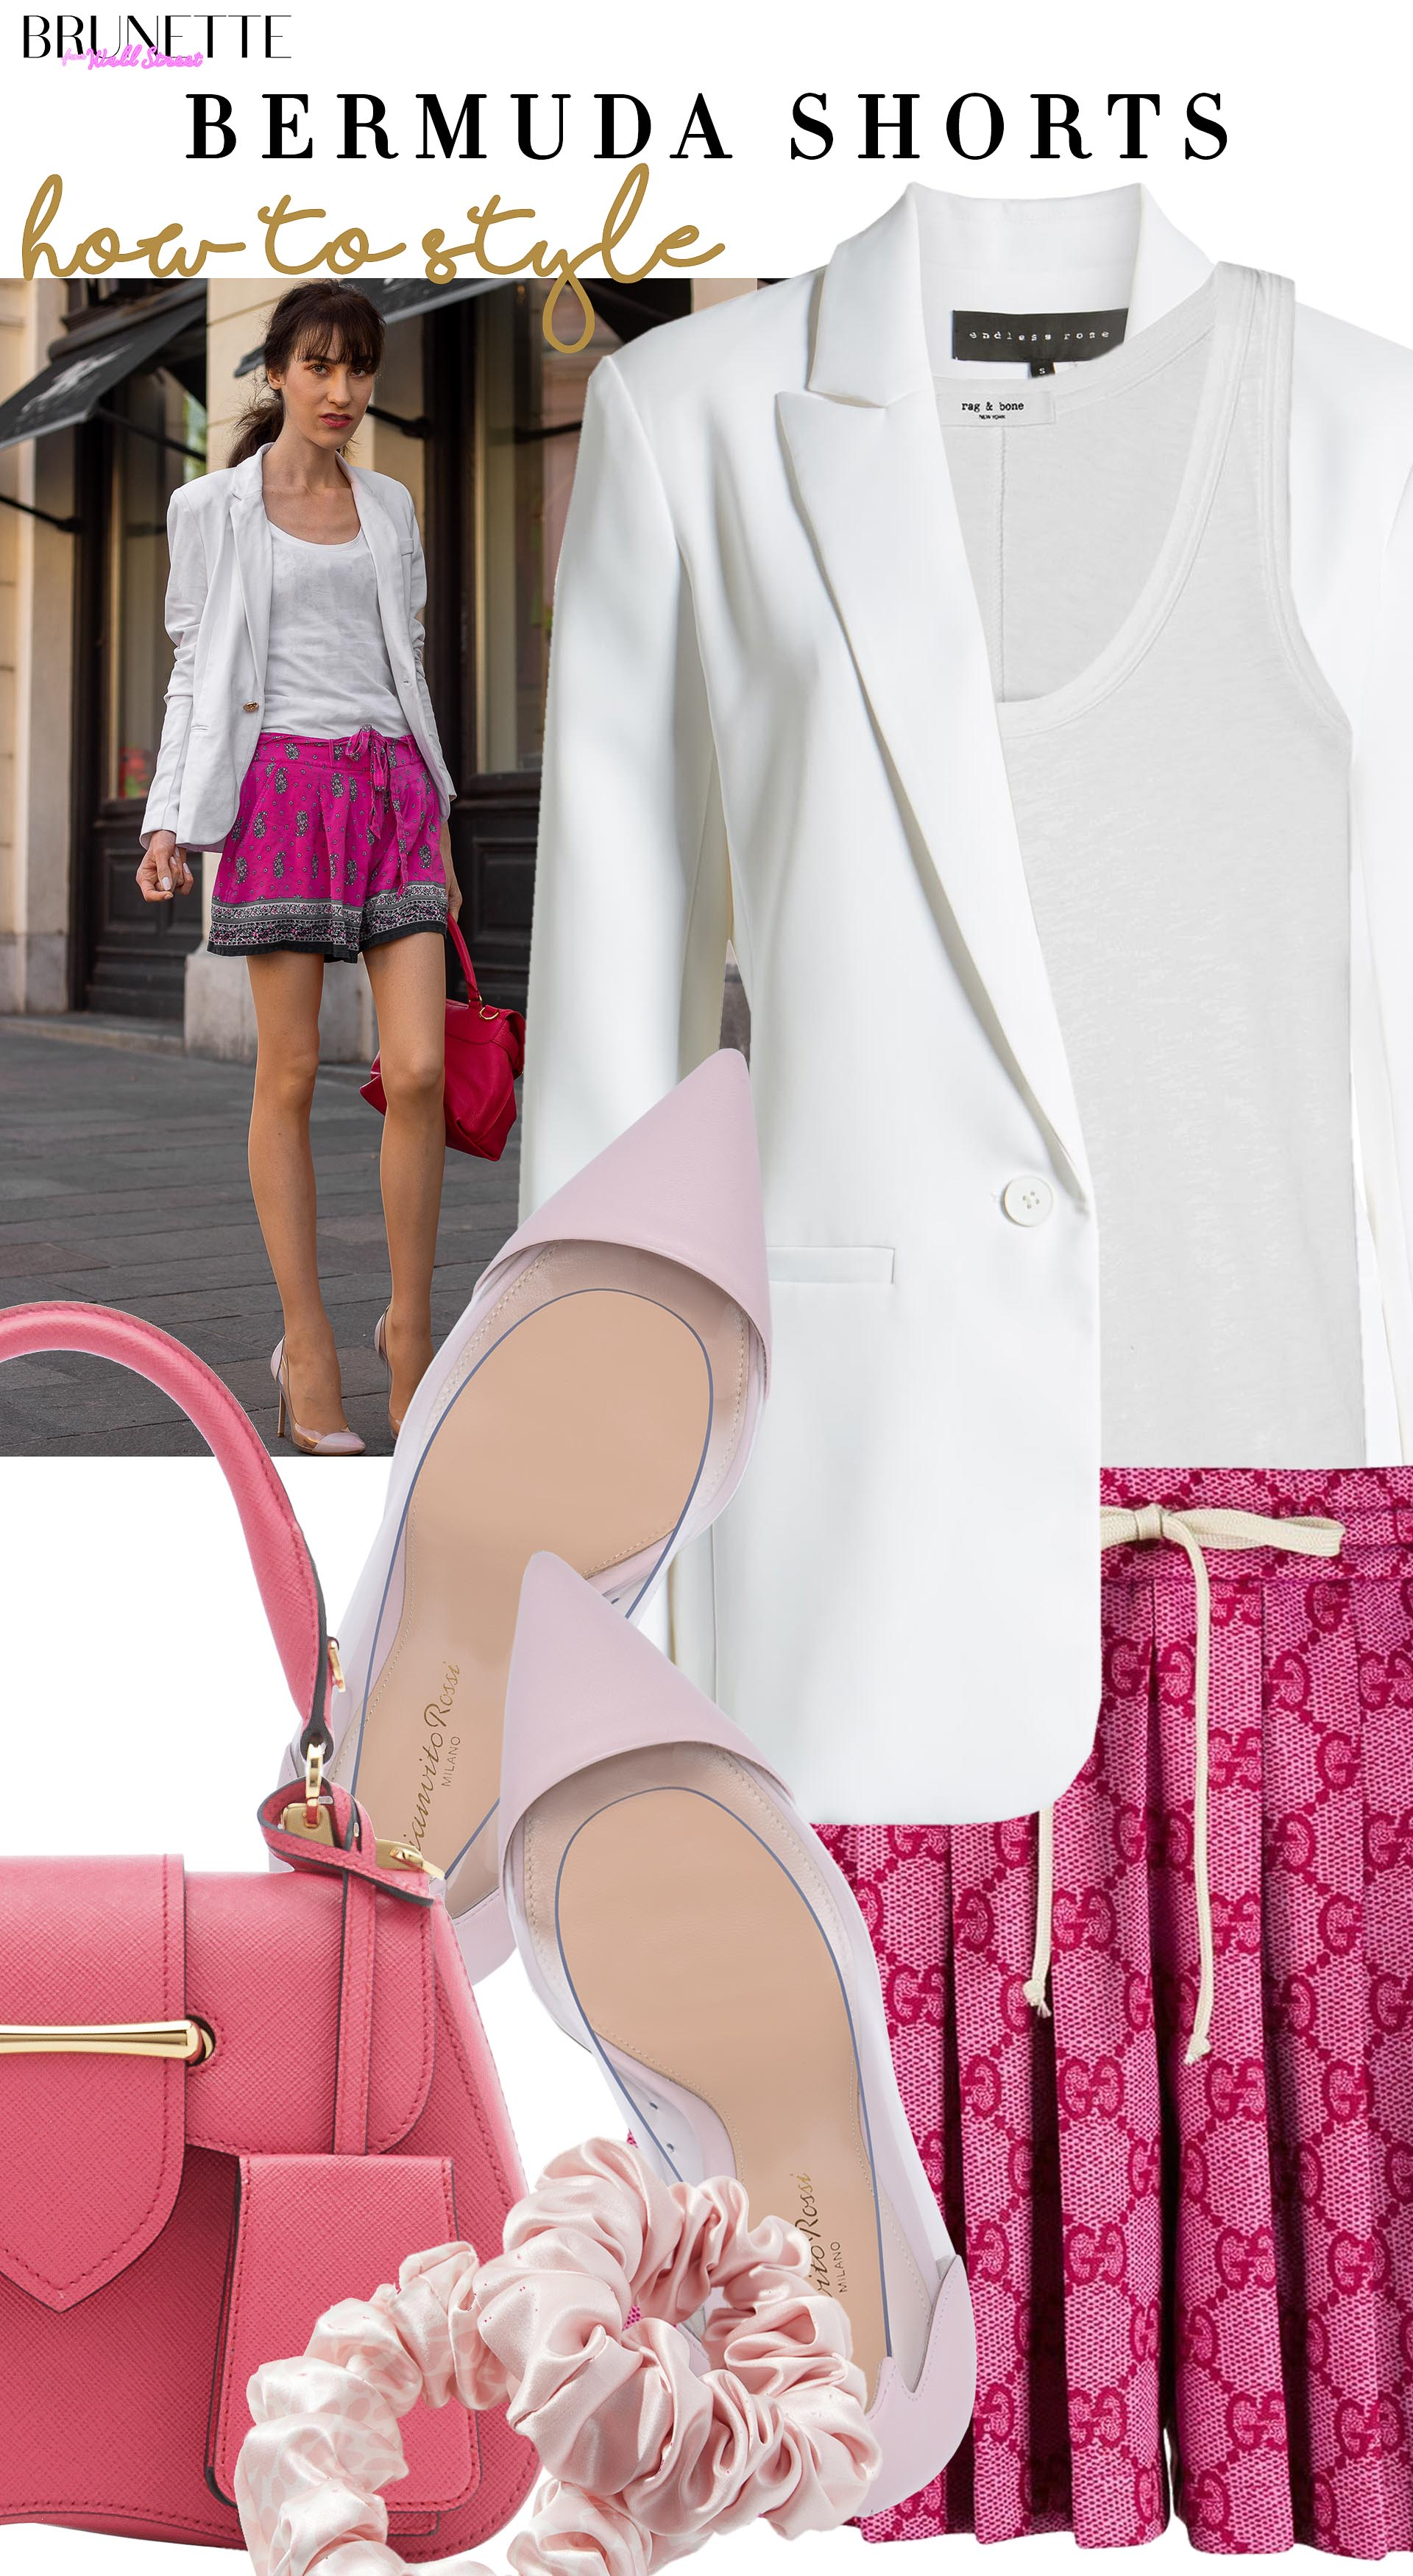 Brunette from Wall Street how to style bermuda shorts scrunchie white blazer prada bag plexi pumps for brunch date with girl friends